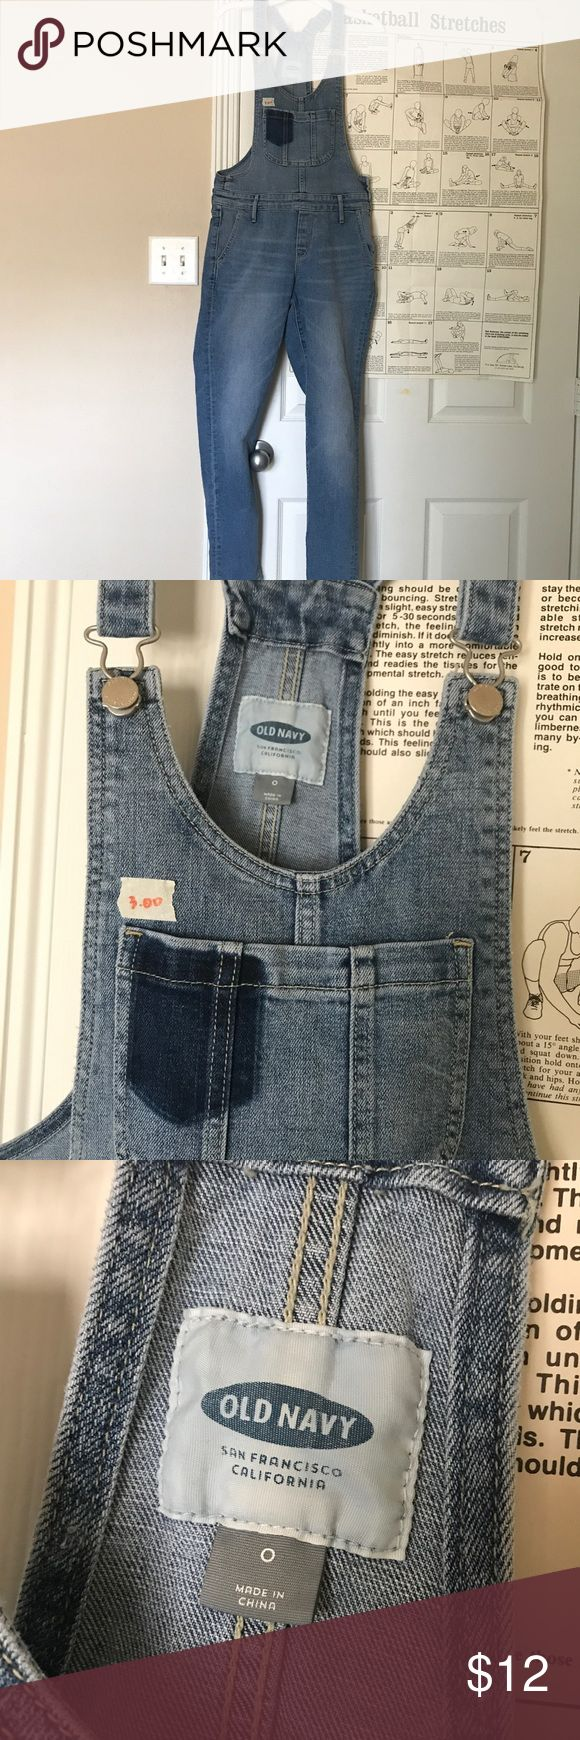 old navy overalls light blue old navy overalls with long pants, great condition Old Navy Jeans Overalls